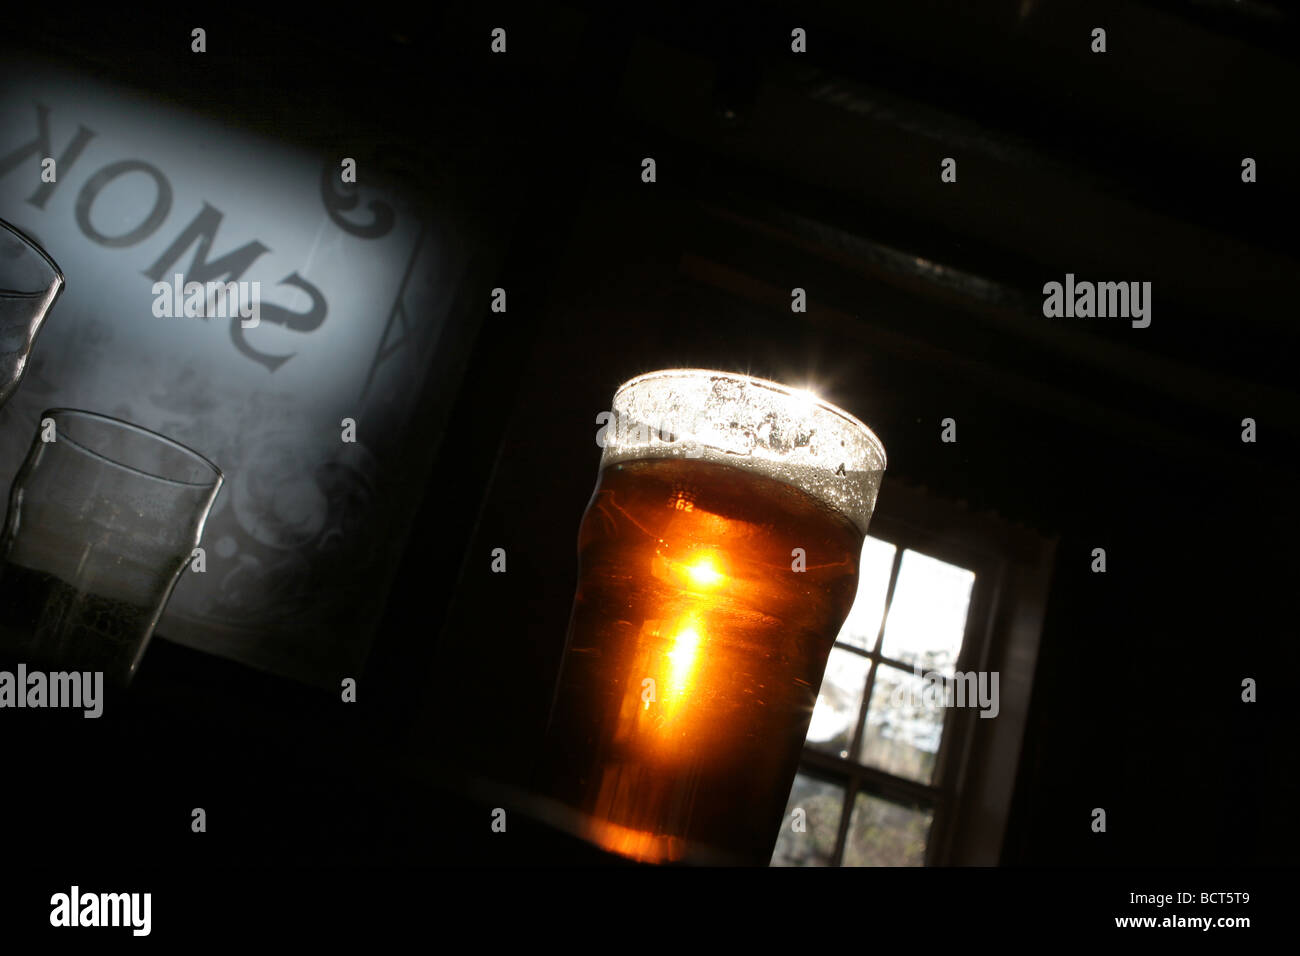 Real Ale Stock Photos Amp Real Ale Stock Images Alamy